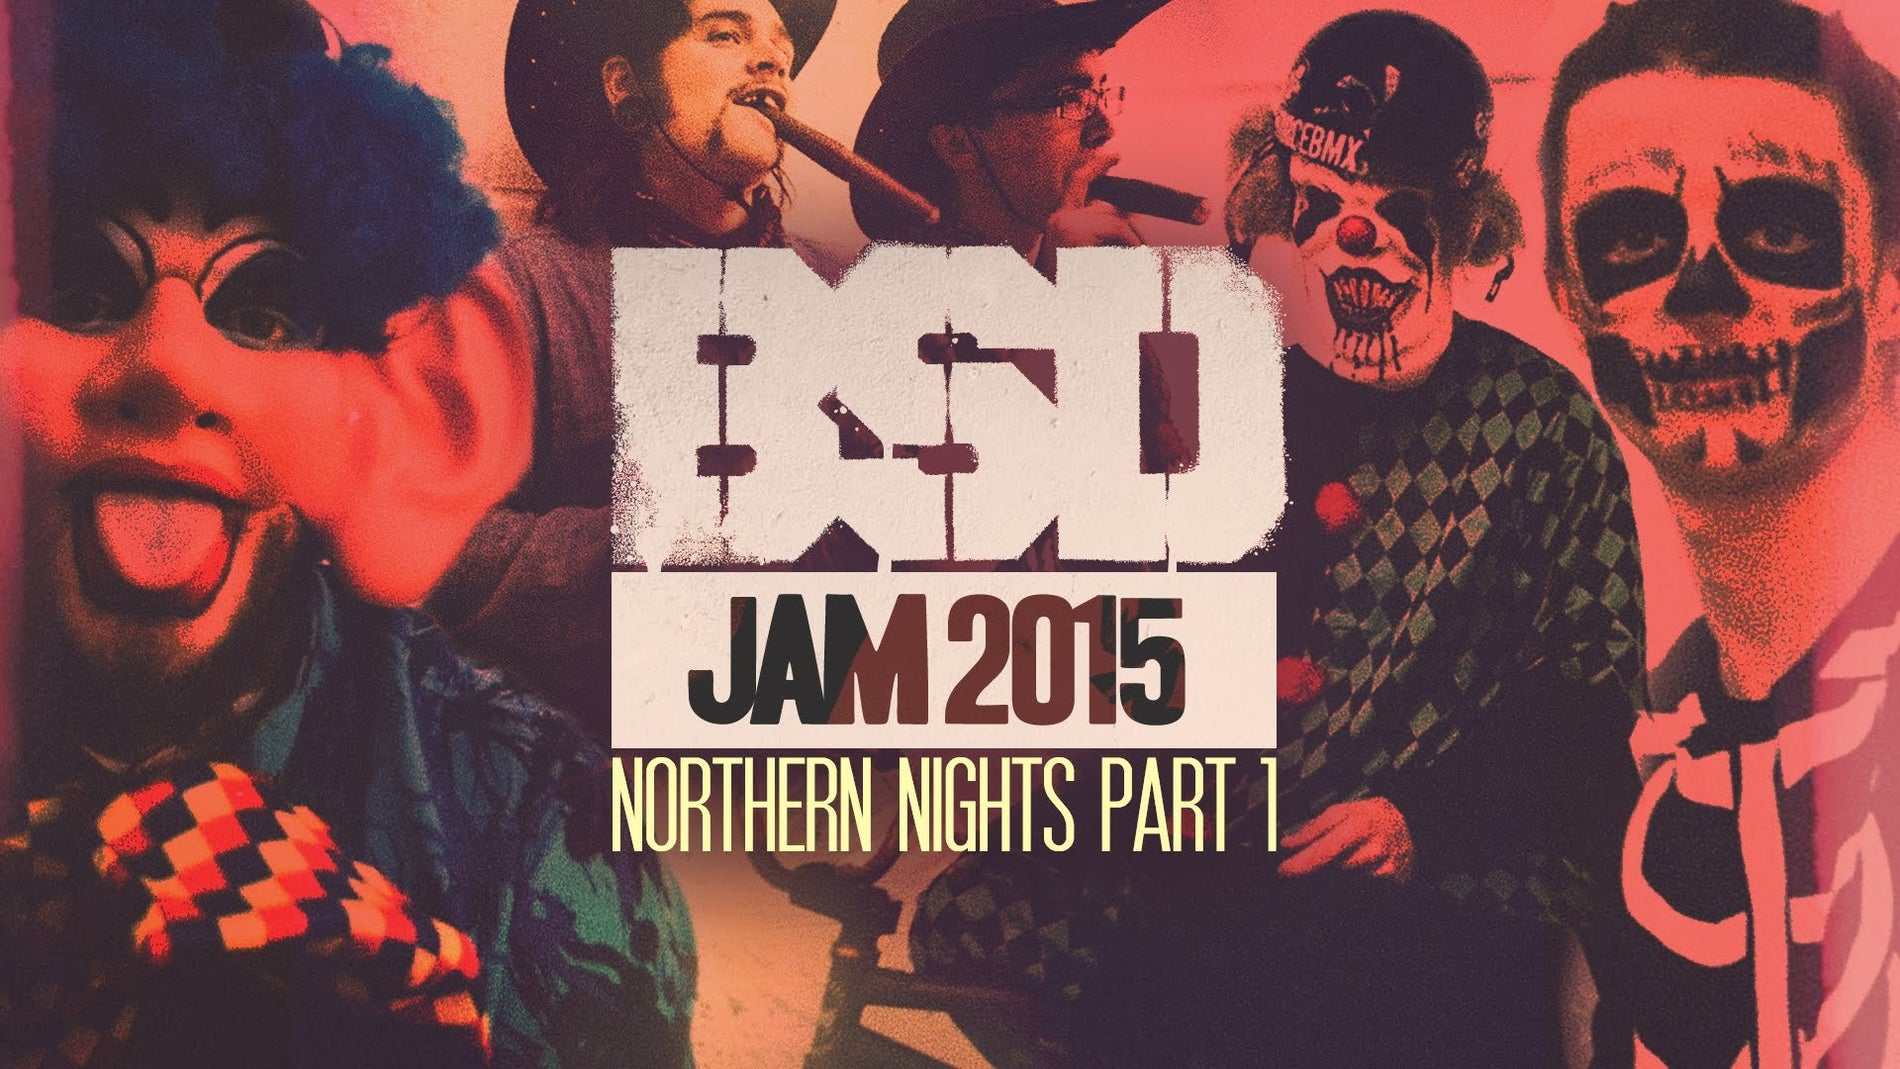 Jam 2015 - Northern Nights Pt.1